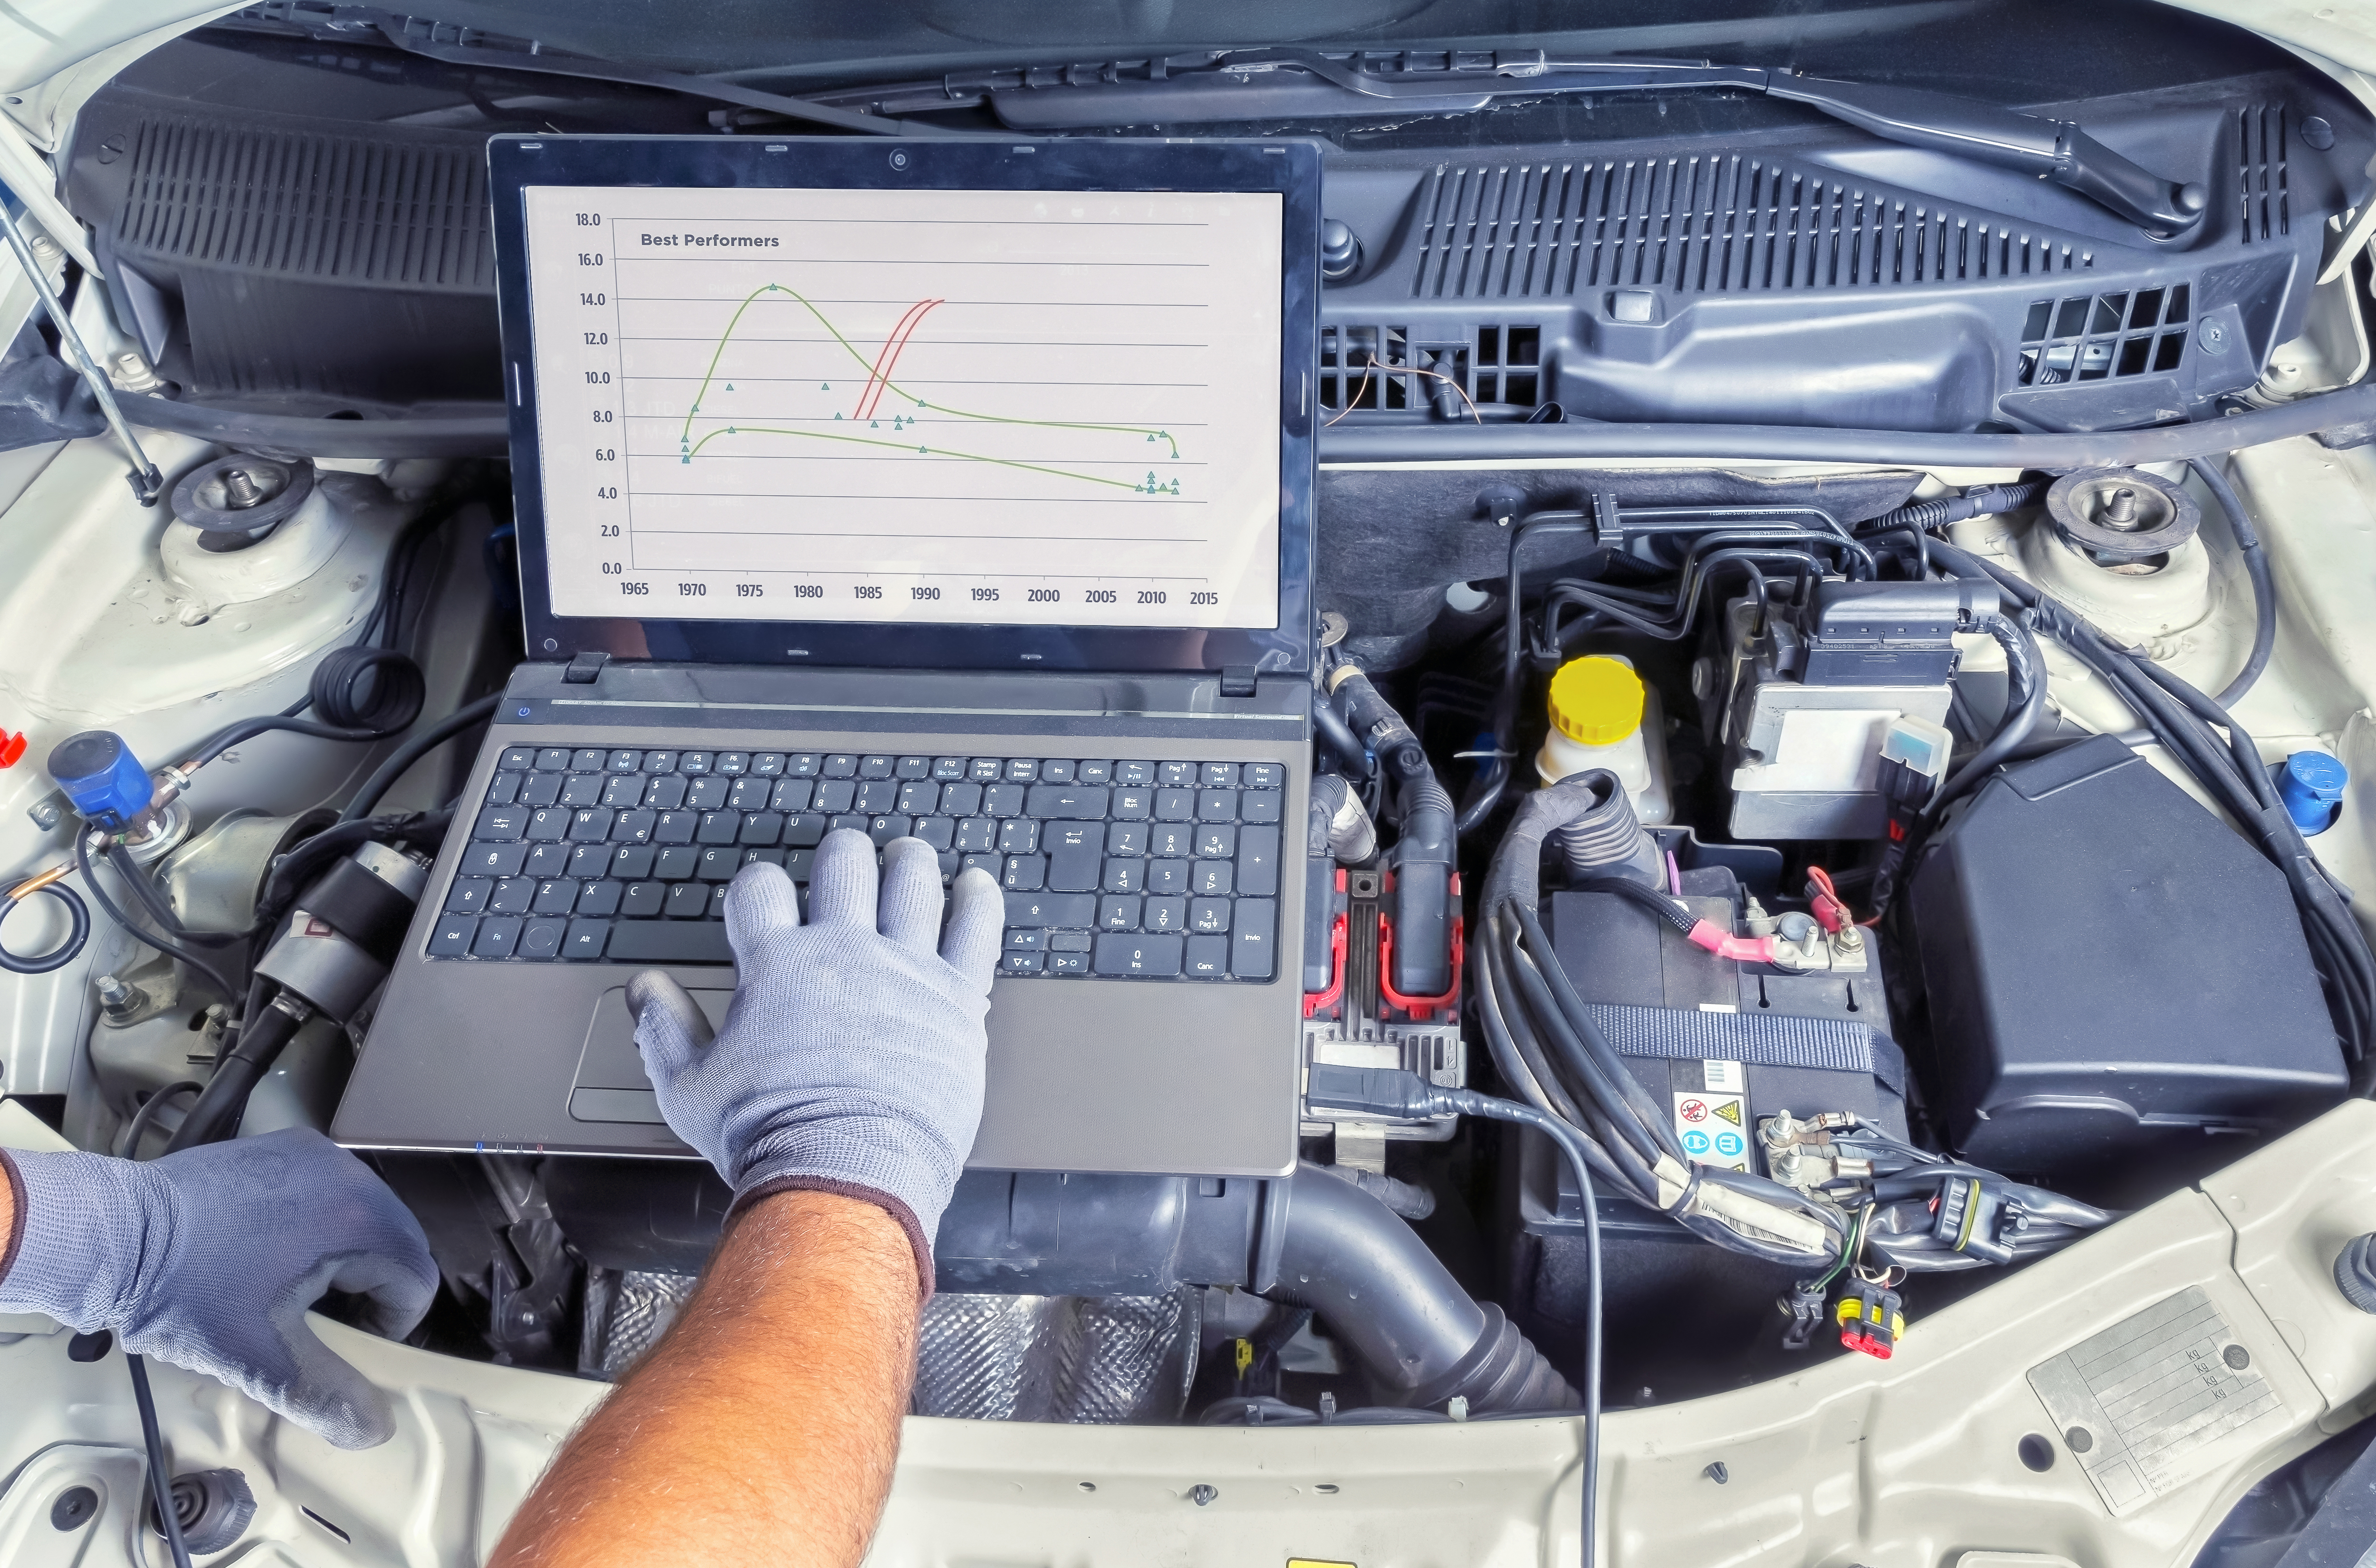 auto repair shop outsourced IT services in voorhees nj 08043